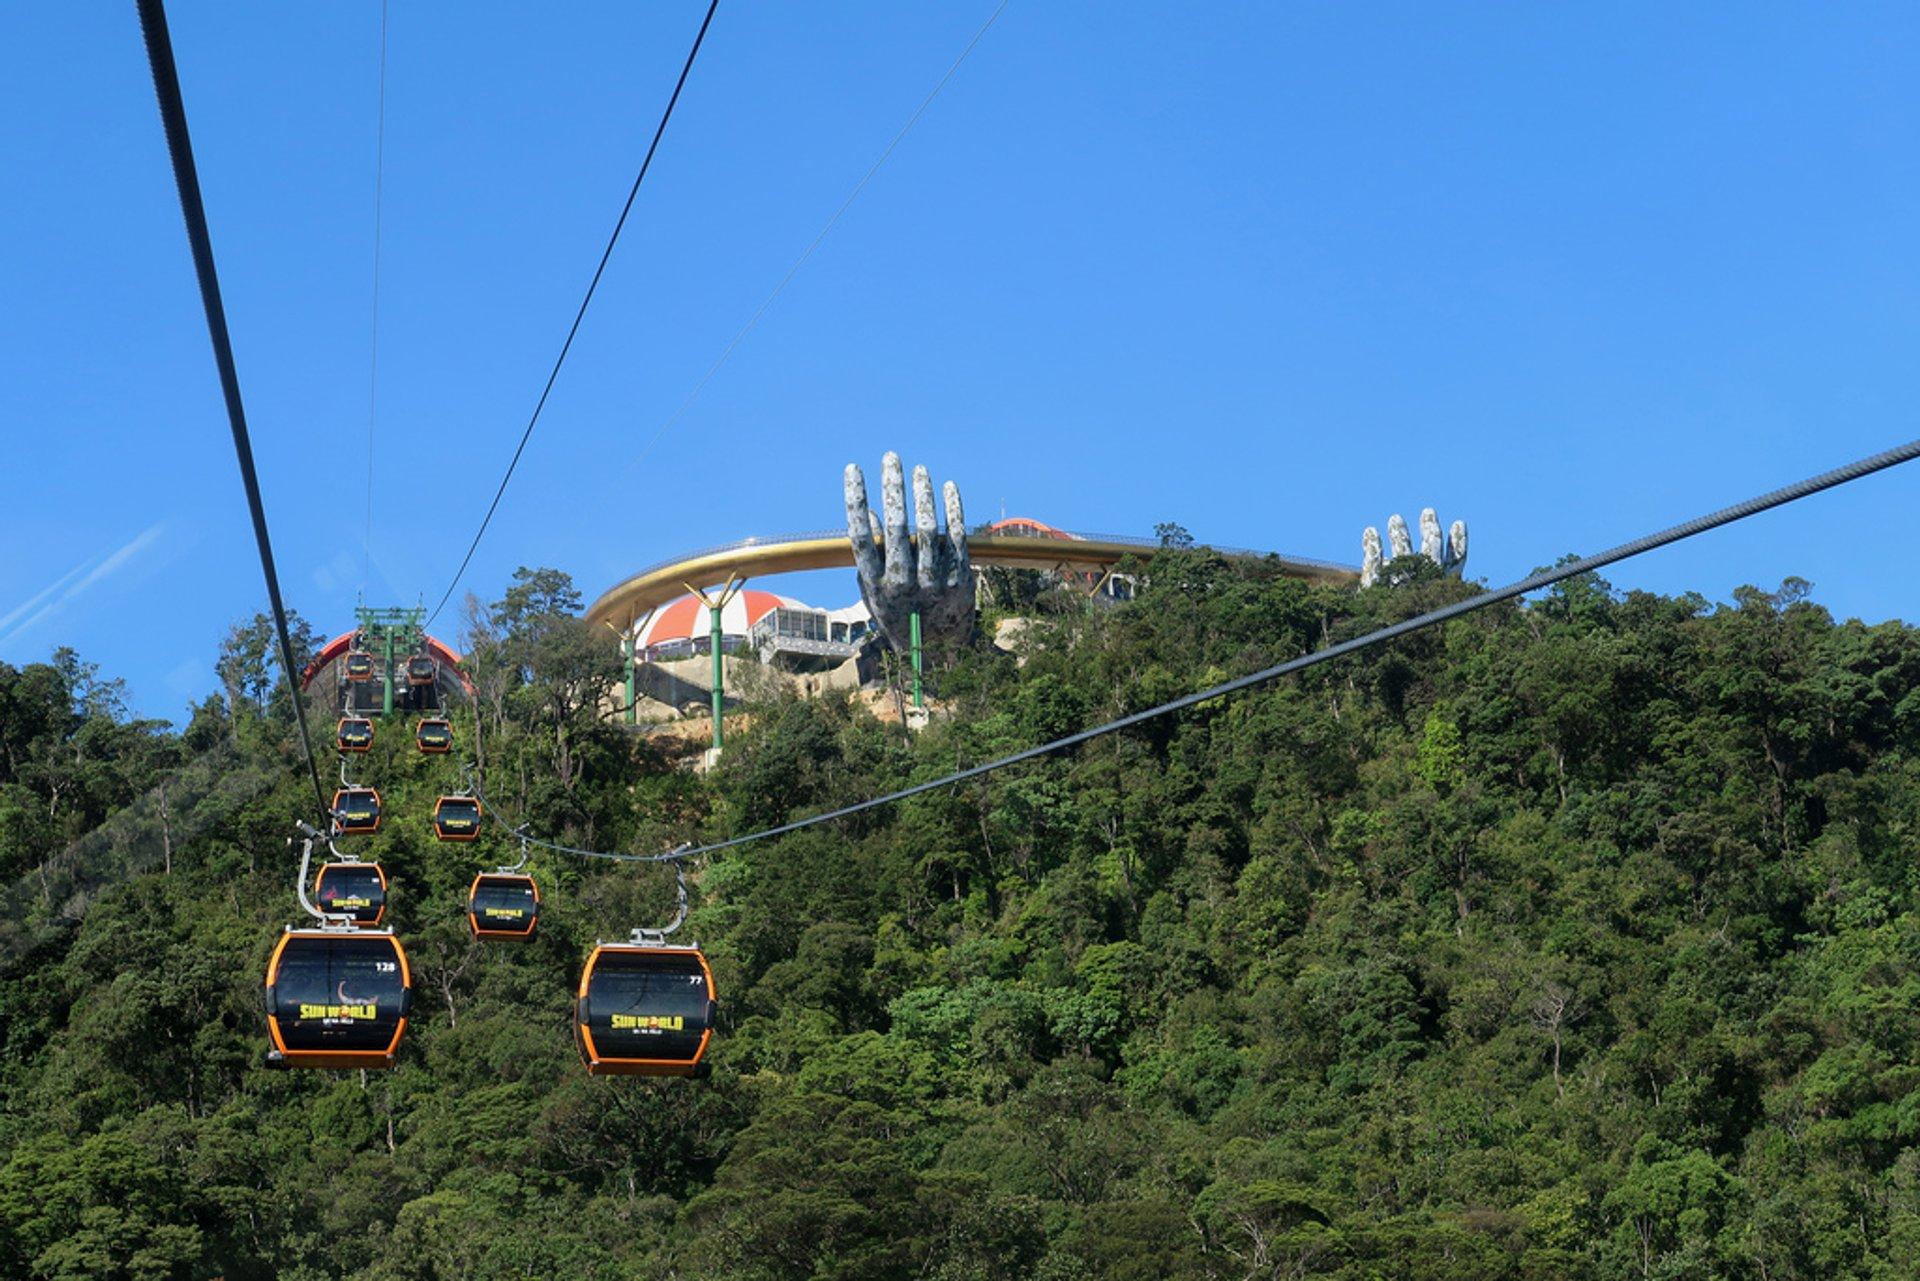 Cable ride up to Ba Na Hills. Some 20 minute peaceful cable ride. 2020